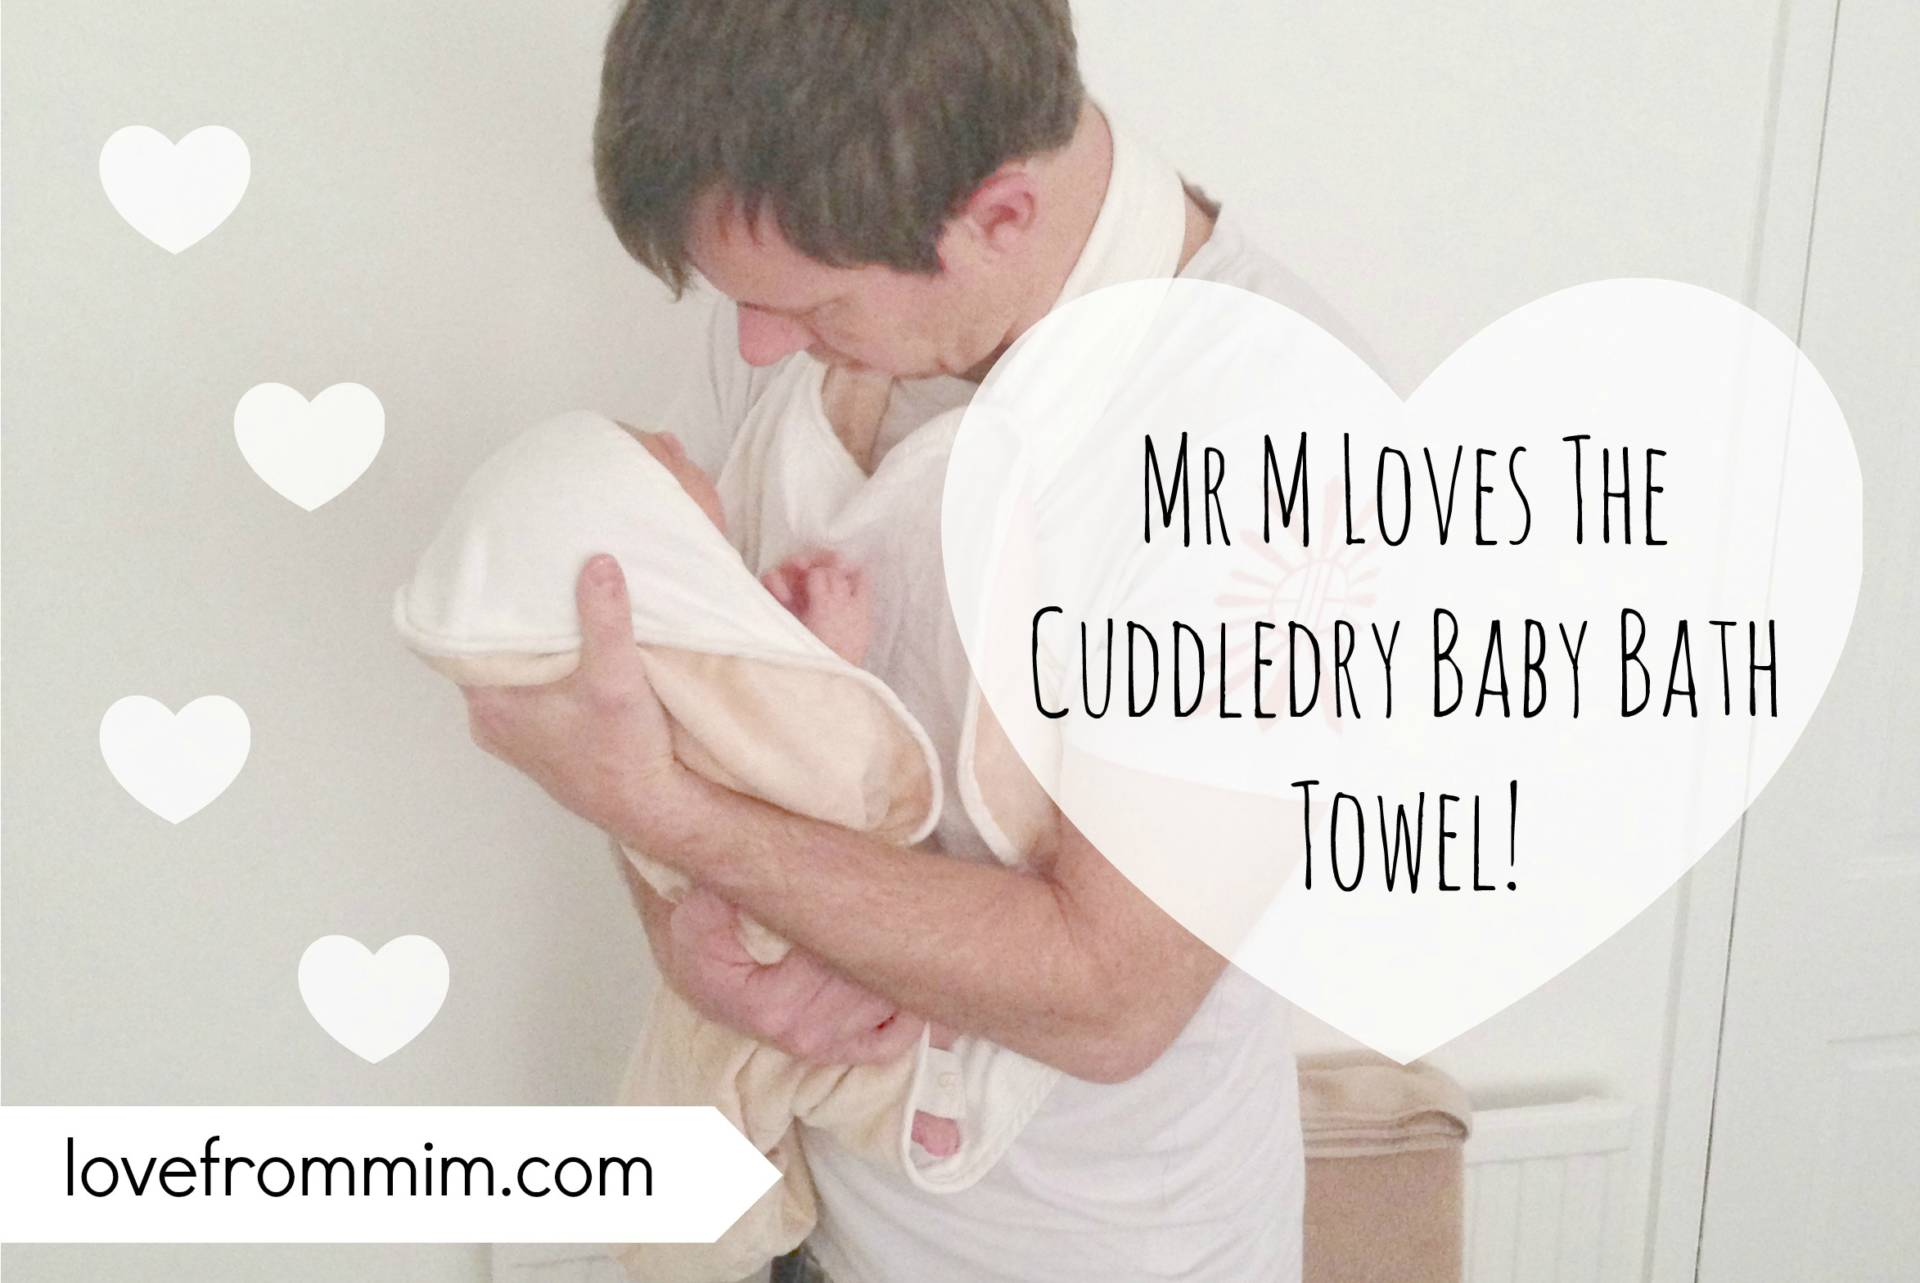 Father's Day Gift Ideas for New Dads - lovefrommim.com Fathers Day Gift Ideas Fathers Day Gifts Cuddledry Baby Bath Towel Cuddledry Apron